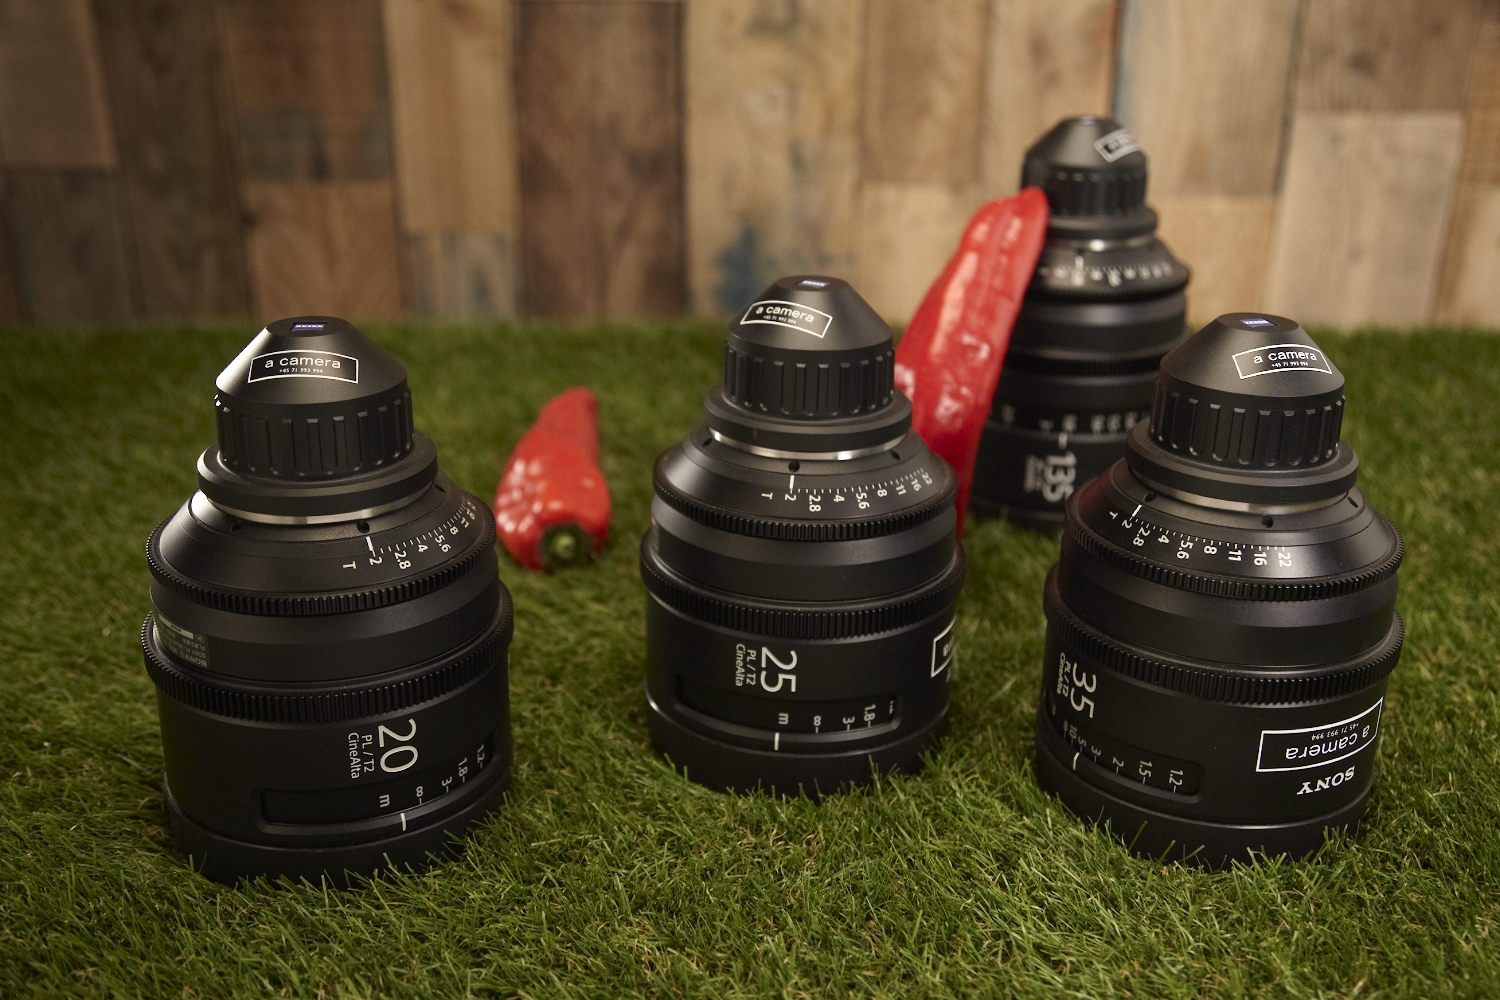 Sony Cine Alta Primes - T2 - set of 6 lenses   The 50mm and the 85mm are both missing in the picture above.   20mm  CF 0,25m -  25mm  CF 0,25m -  35mm  CF 0,35m -  50mm  CF 0,5 -  85mm  CF 0,8m -  135mm  CF 0,8m